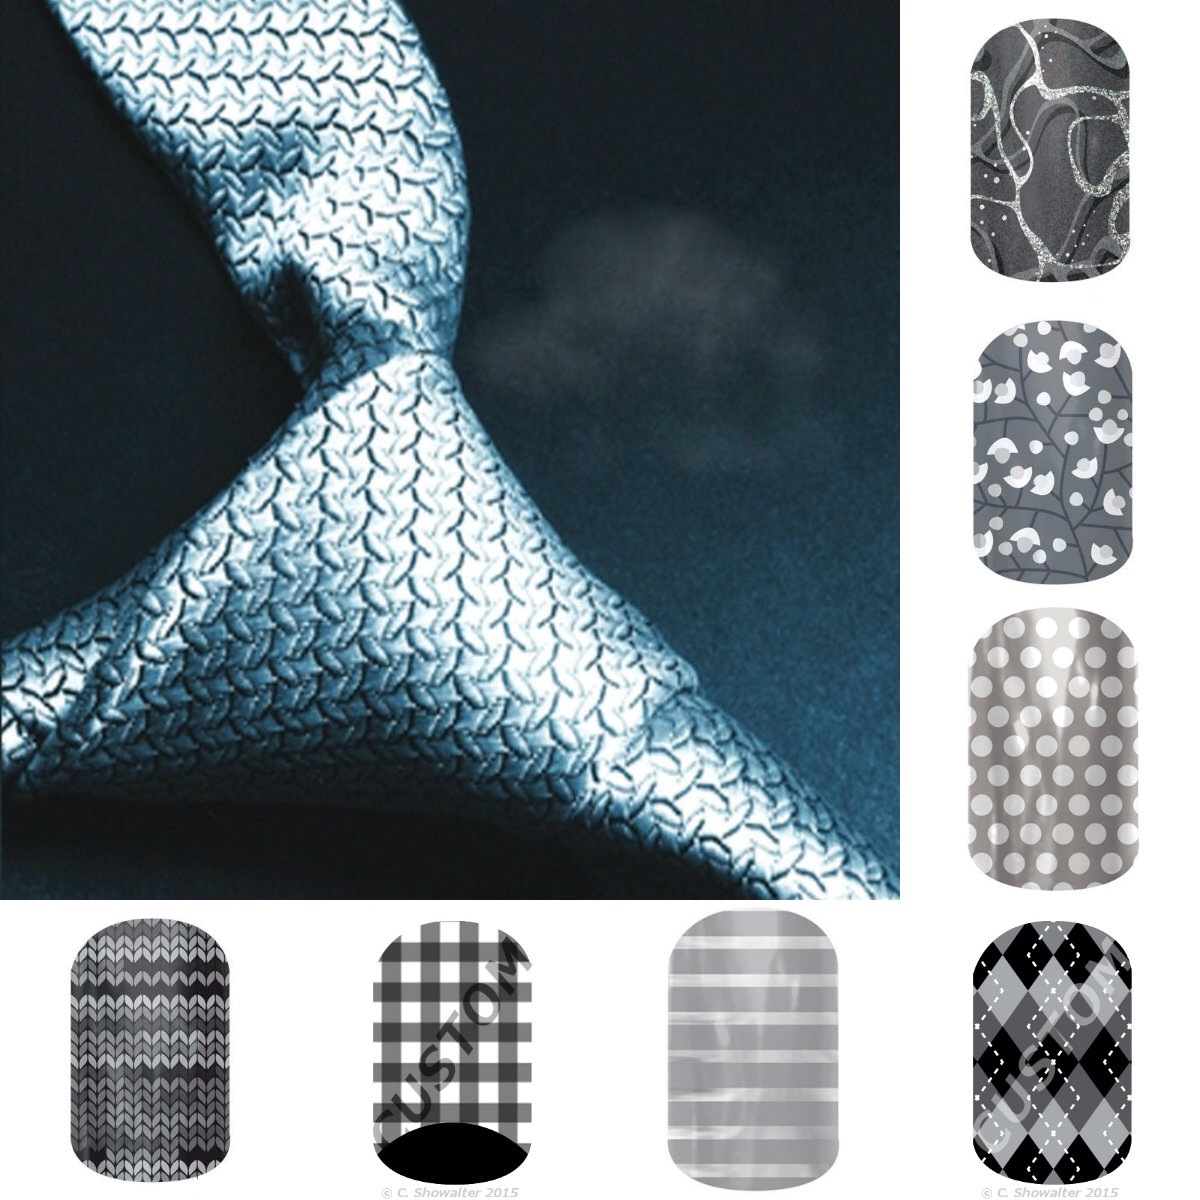 50 Shade Is Jamberry Jam Pamper Your Nails